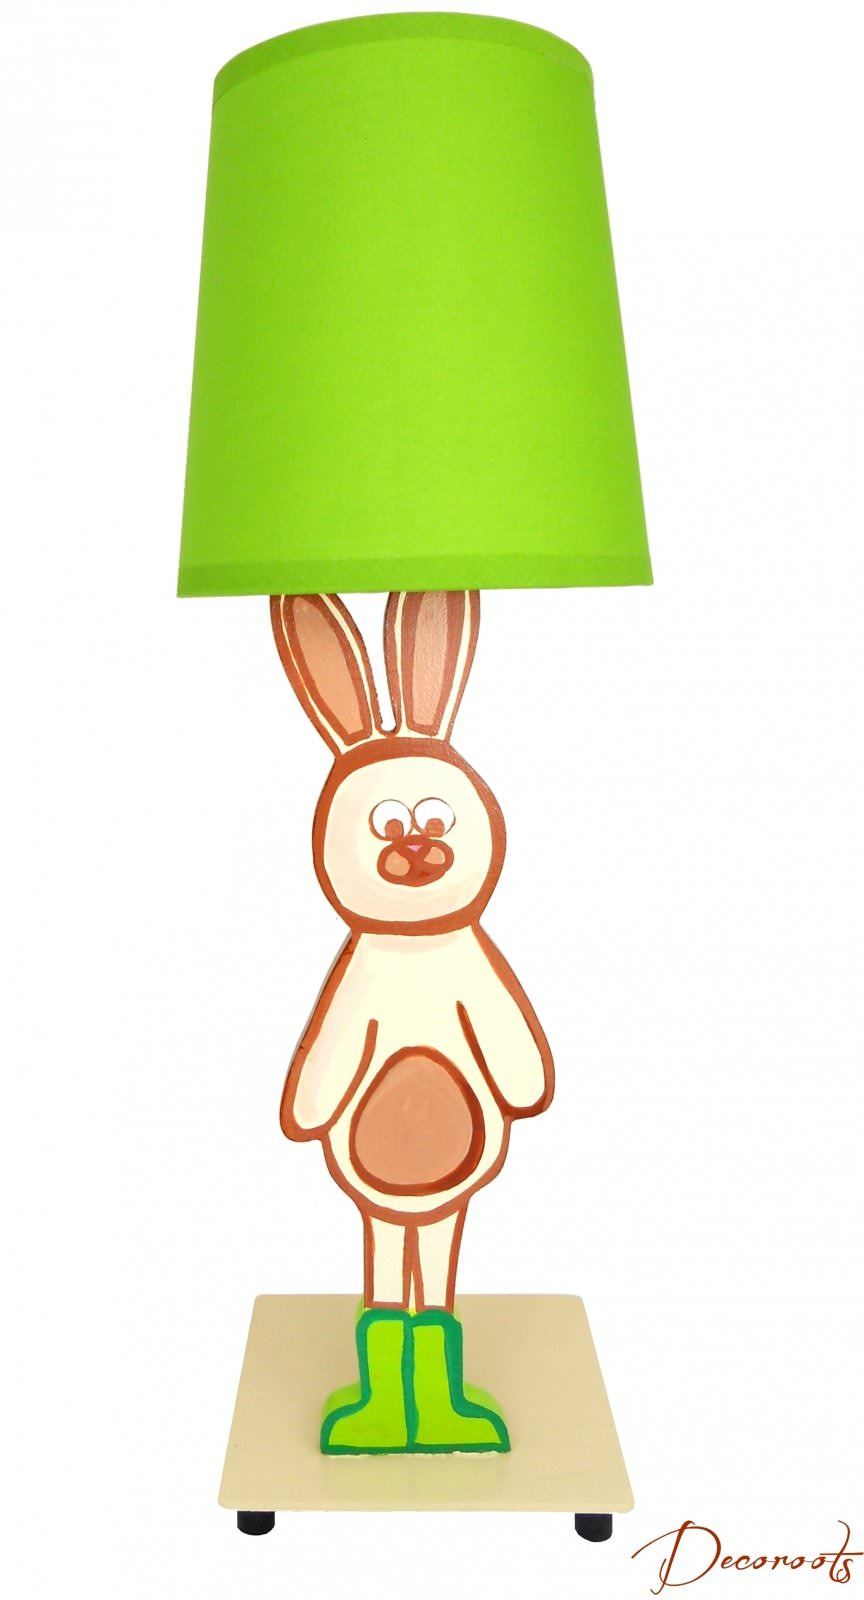 lampe de chevet enfant b b lapin nature for t beige vert et chocolat. Black Bedroom Furniture Sets. Home Design Ideas